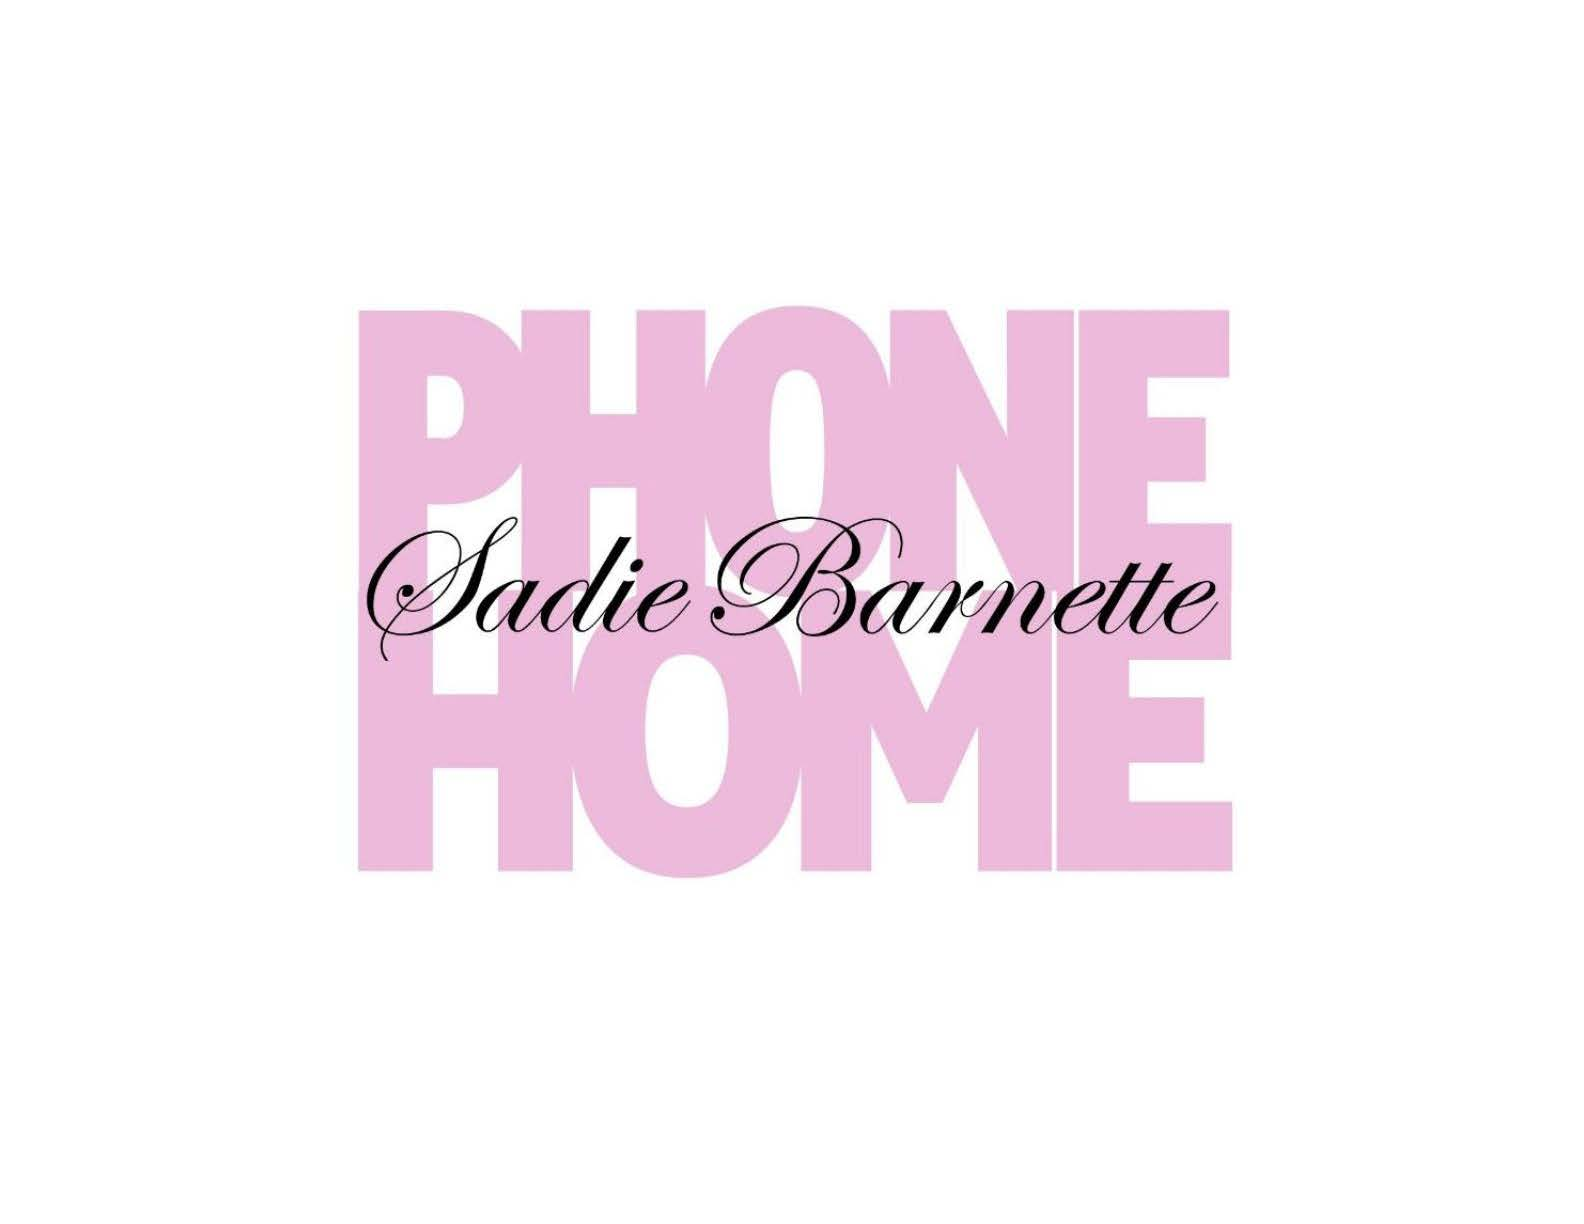 MoAD Announces 2019 Exhibition Sadie Barnette: PHONE HOME        View More